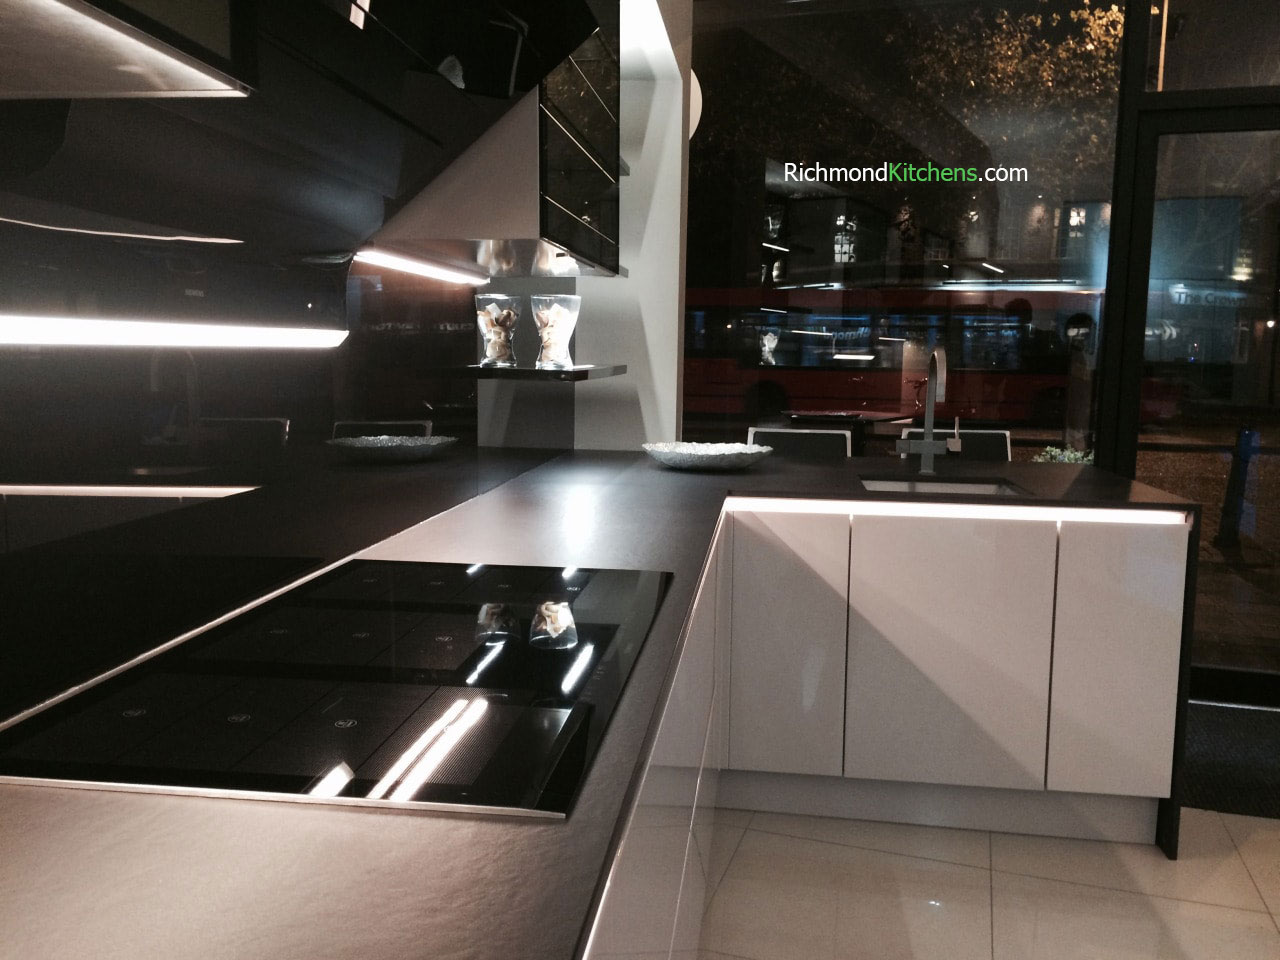 german kitchens west london. kitchen showrooms putney london german kitchens west